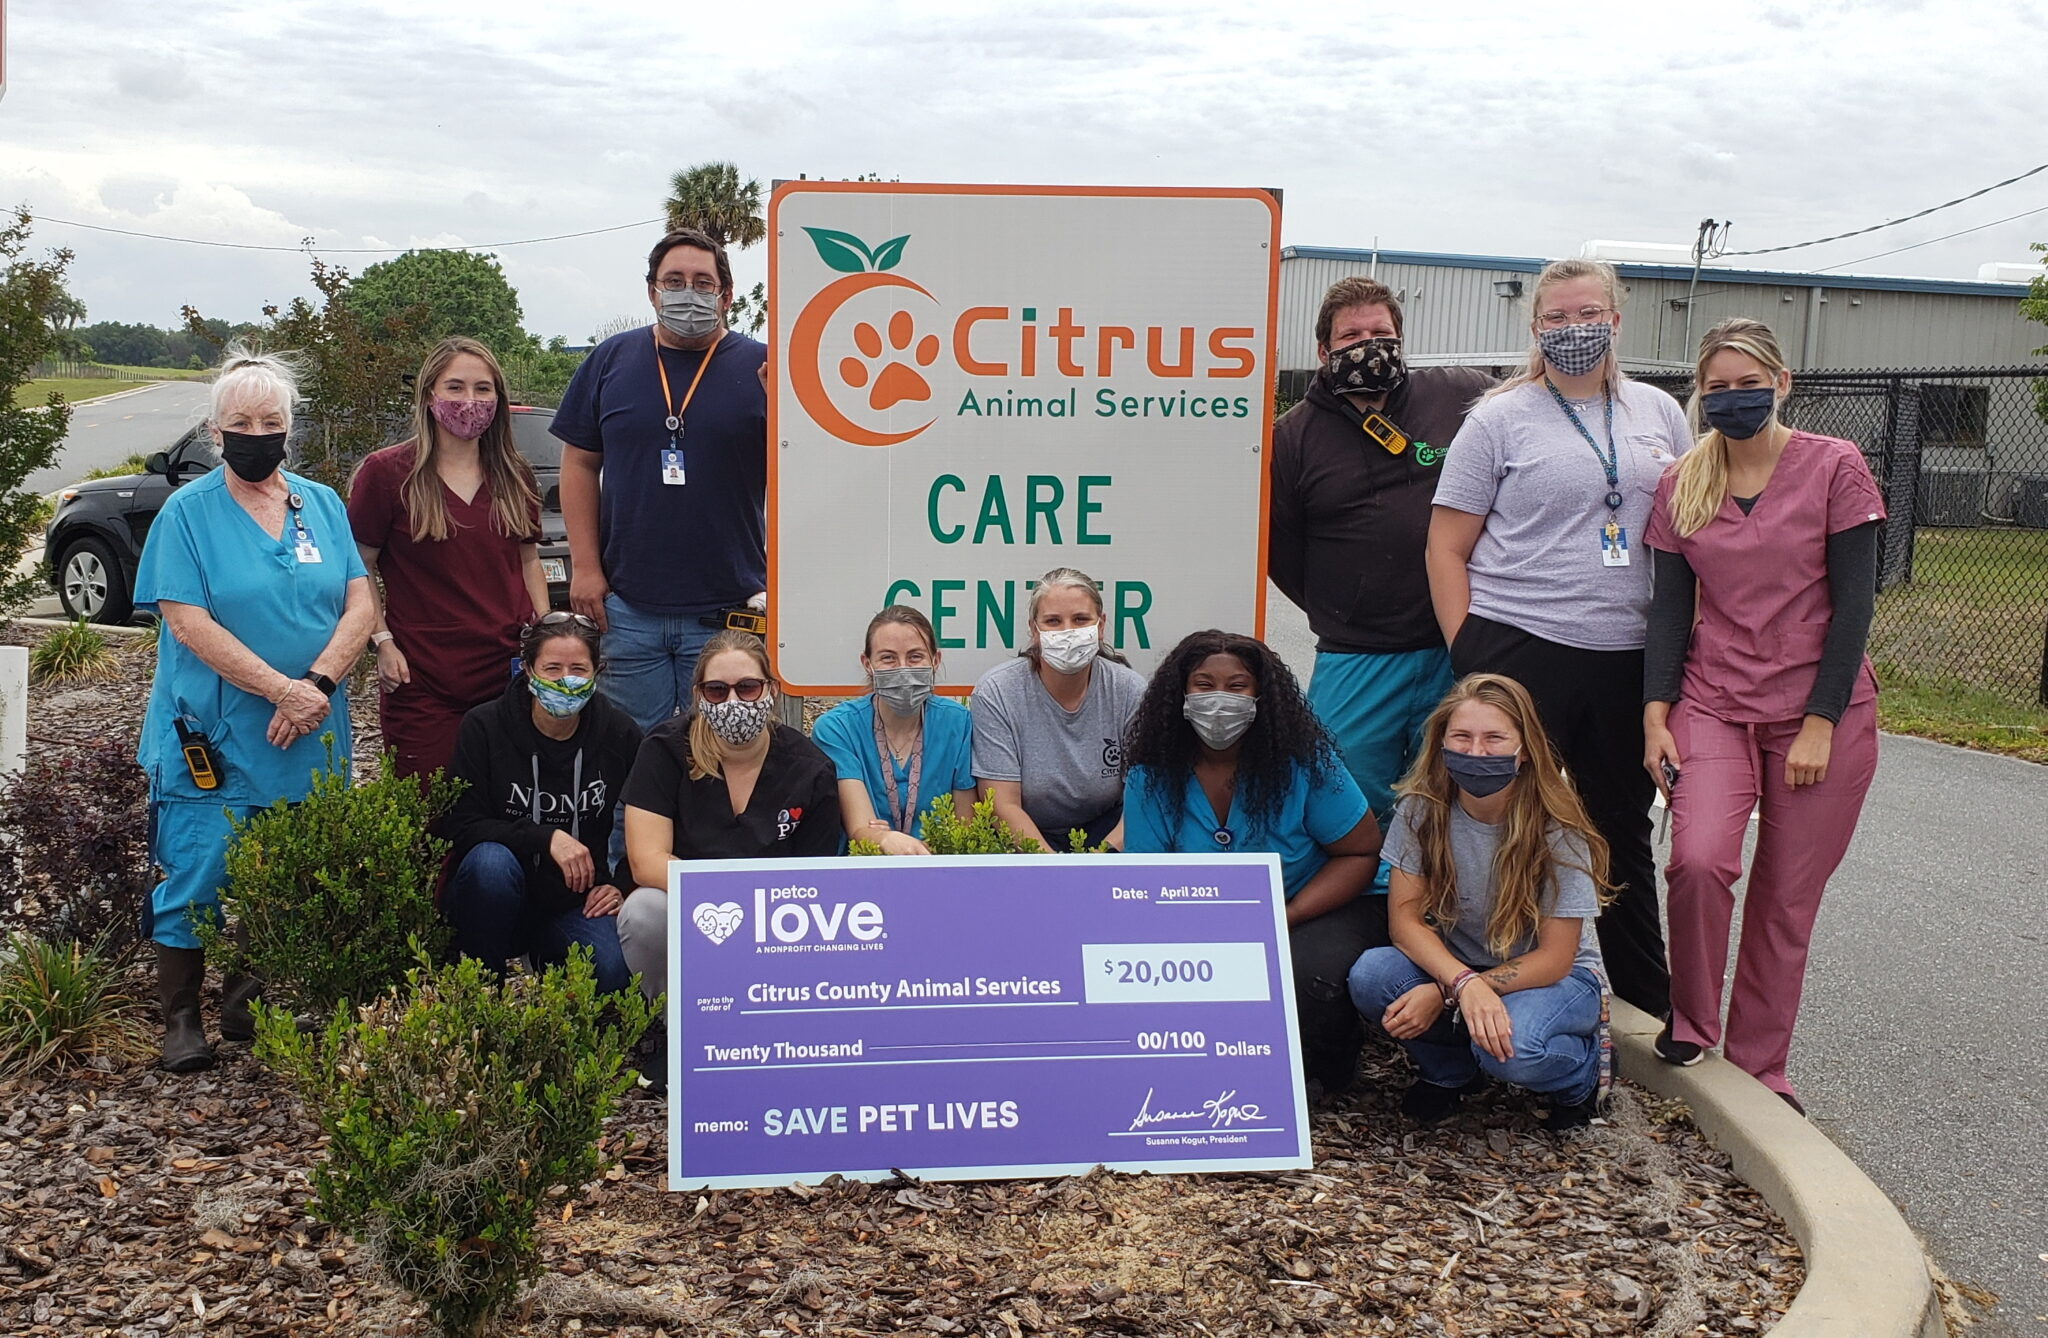 Citrus County Animal Services announced today a $20,000 grant investment from the newly named Petco Love, to support the lifesaving work done through their pet retention program which provides supplies, medical treatment, and other services for animals in Citrus County.